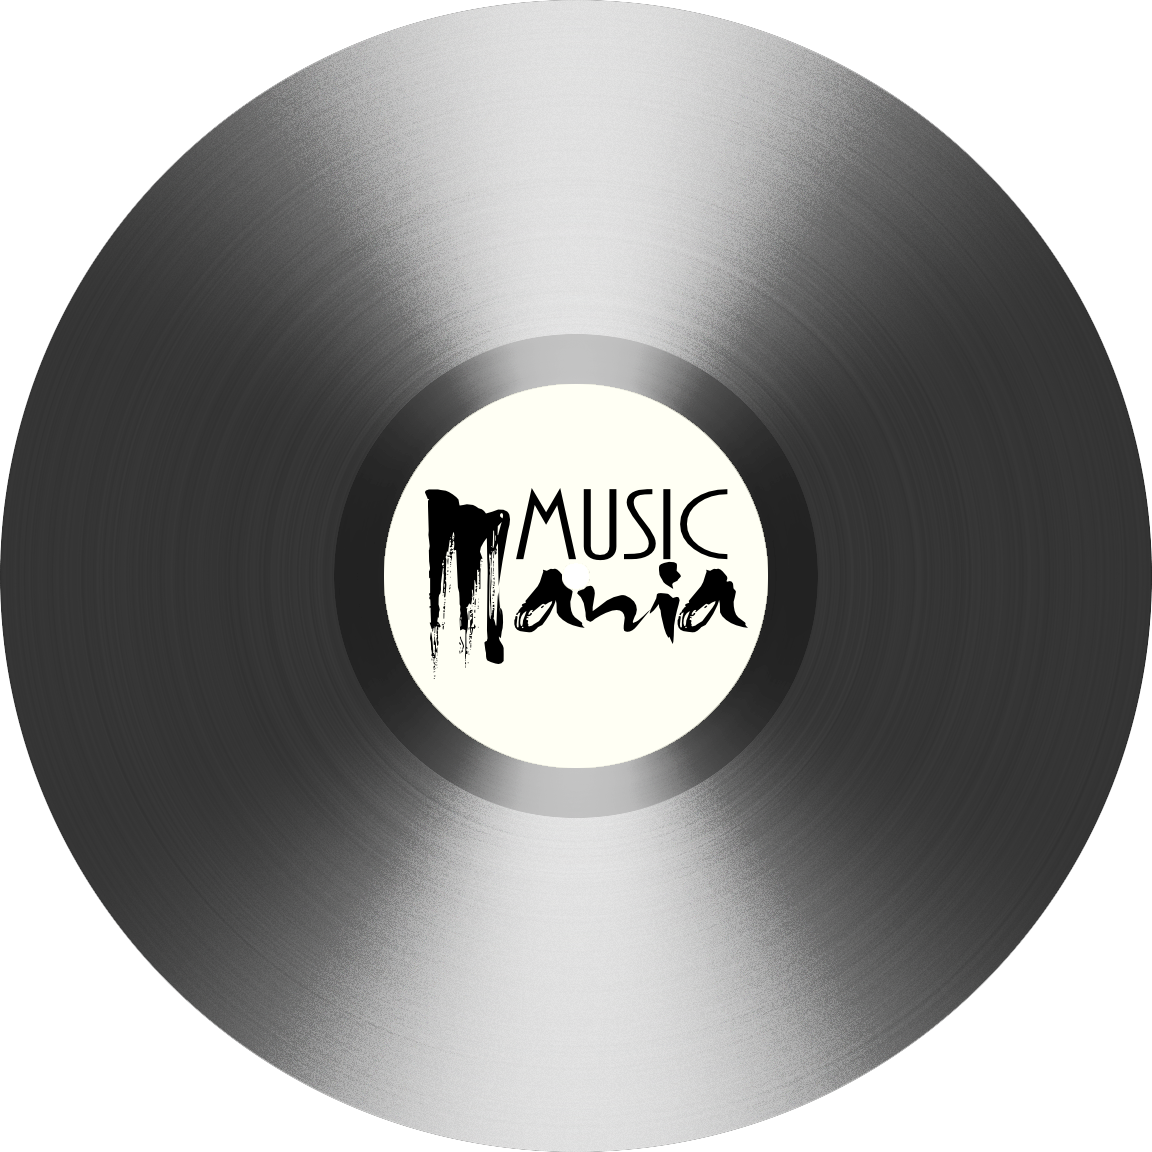 White vinyl record png. Music mania by nuckchorris